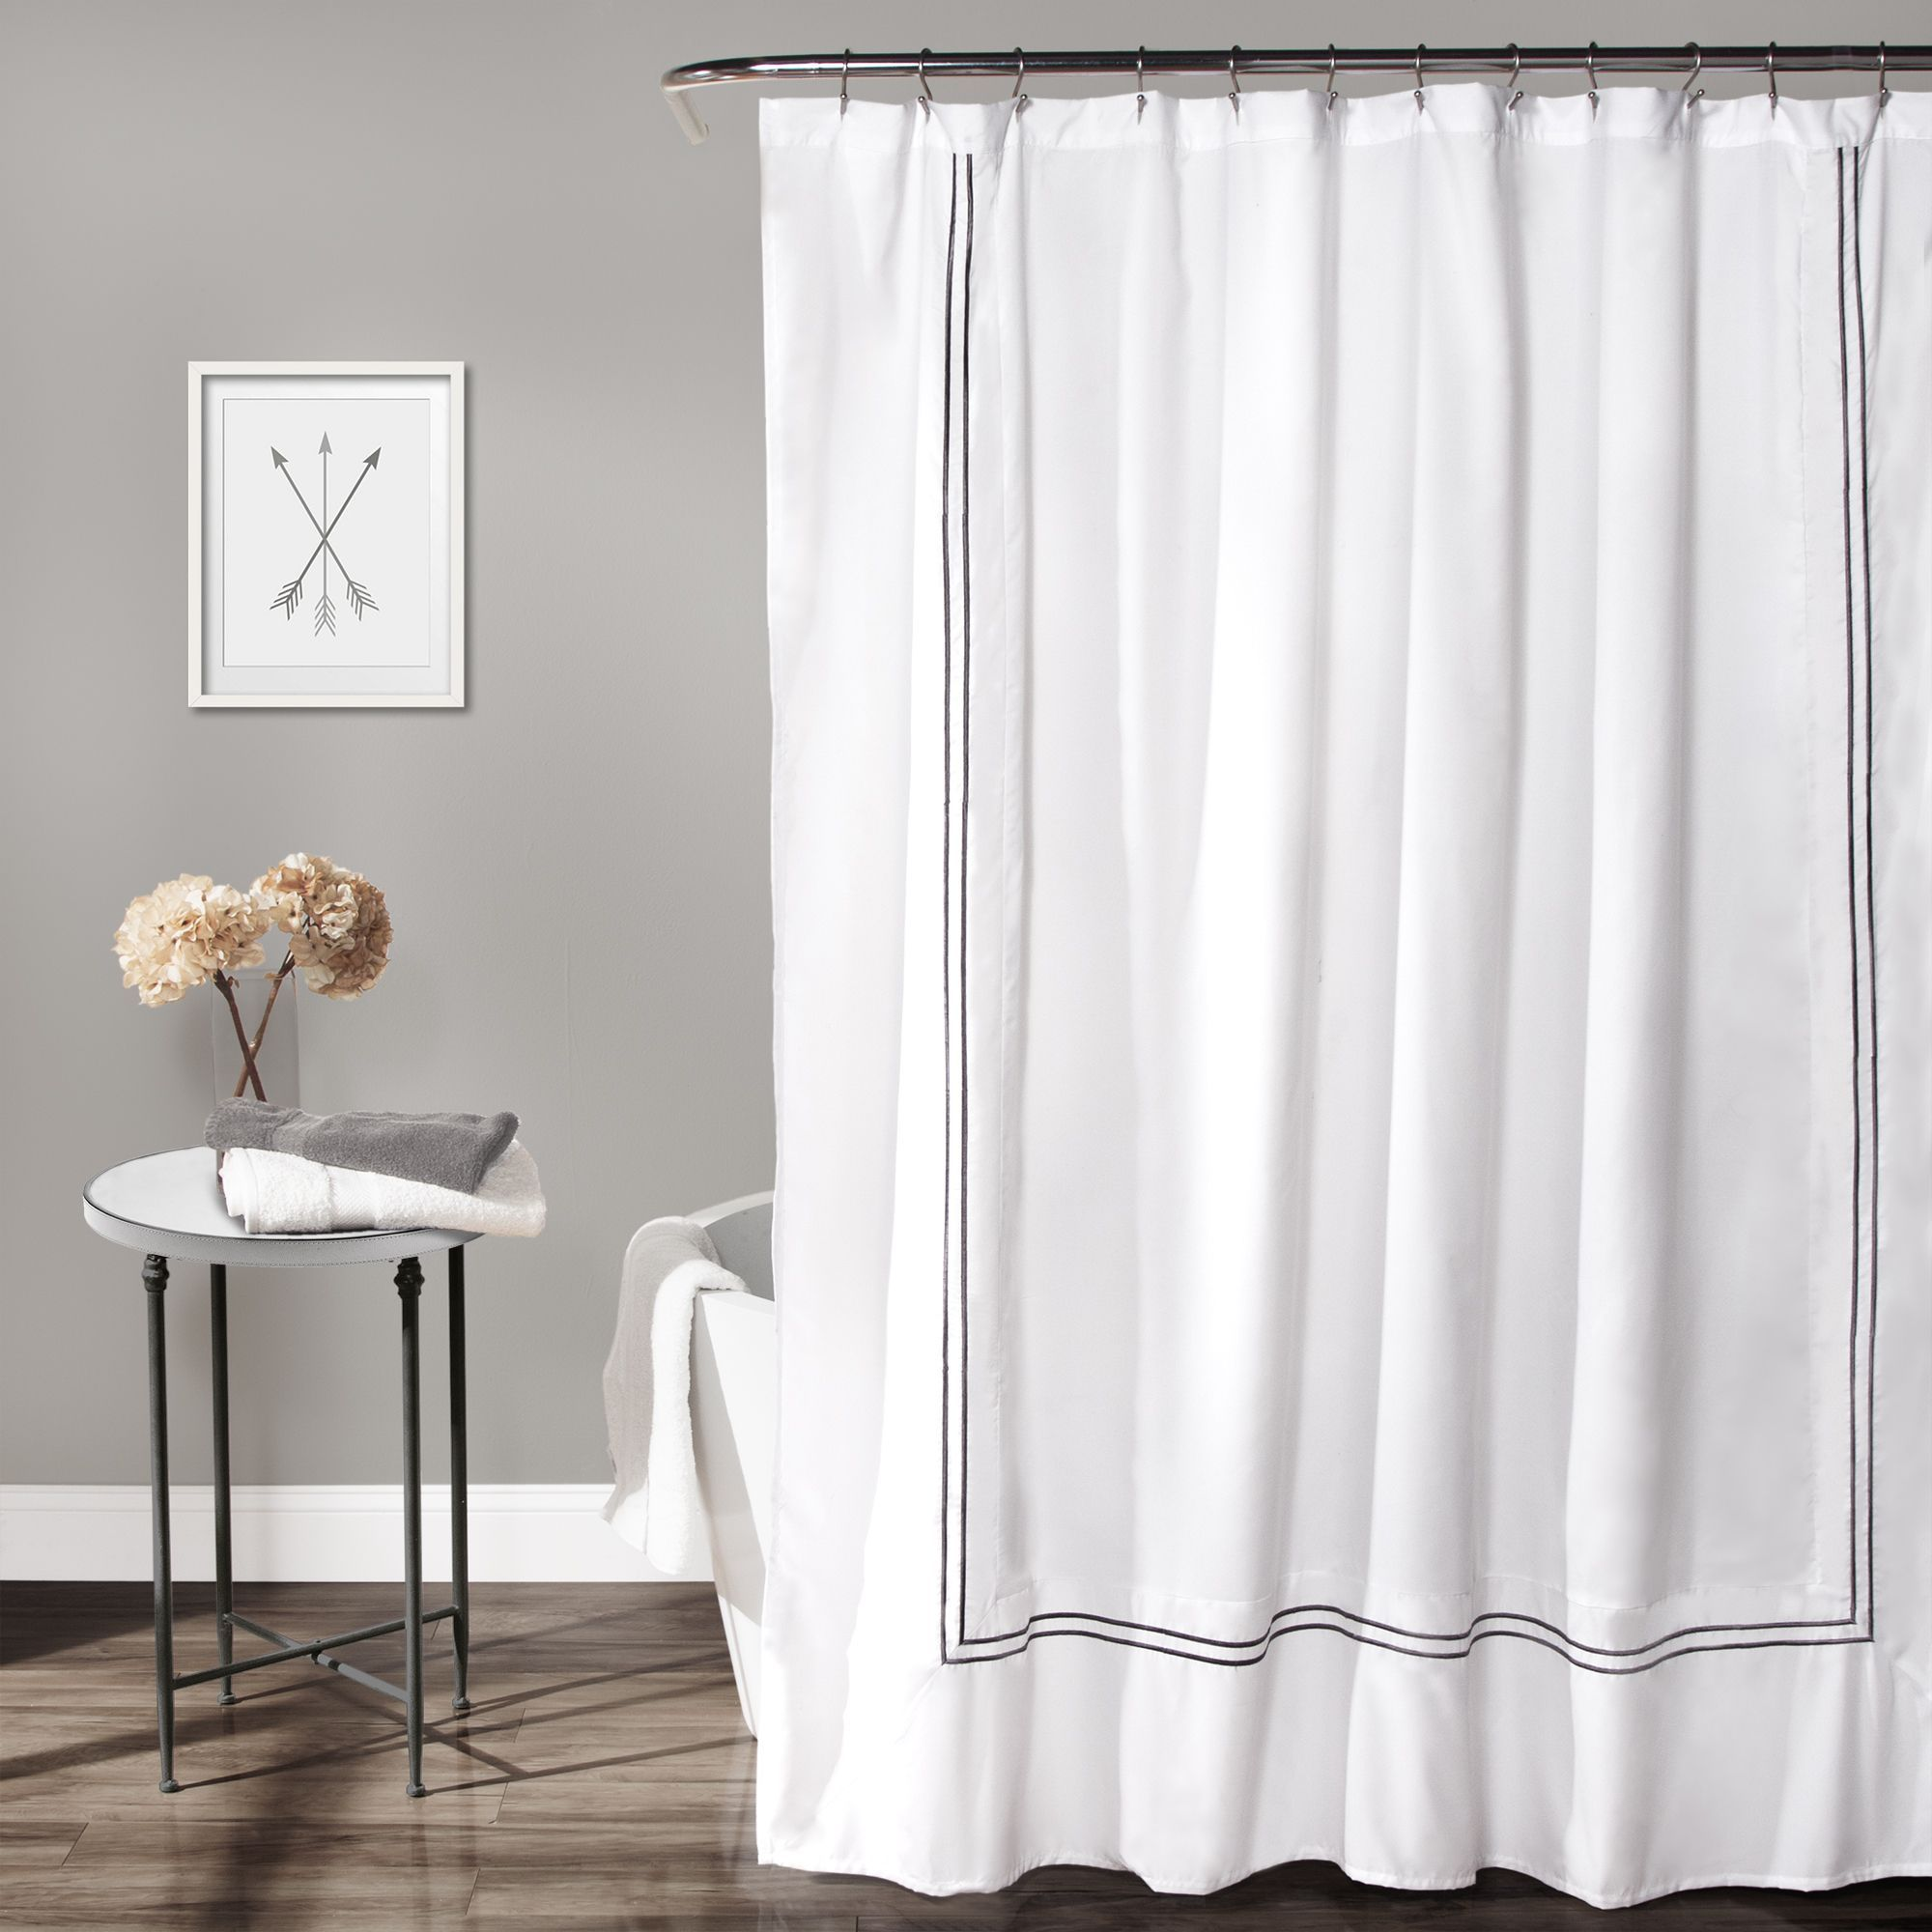 Lush Decor Hotel Collection Shower Curtain White Gray Fabric